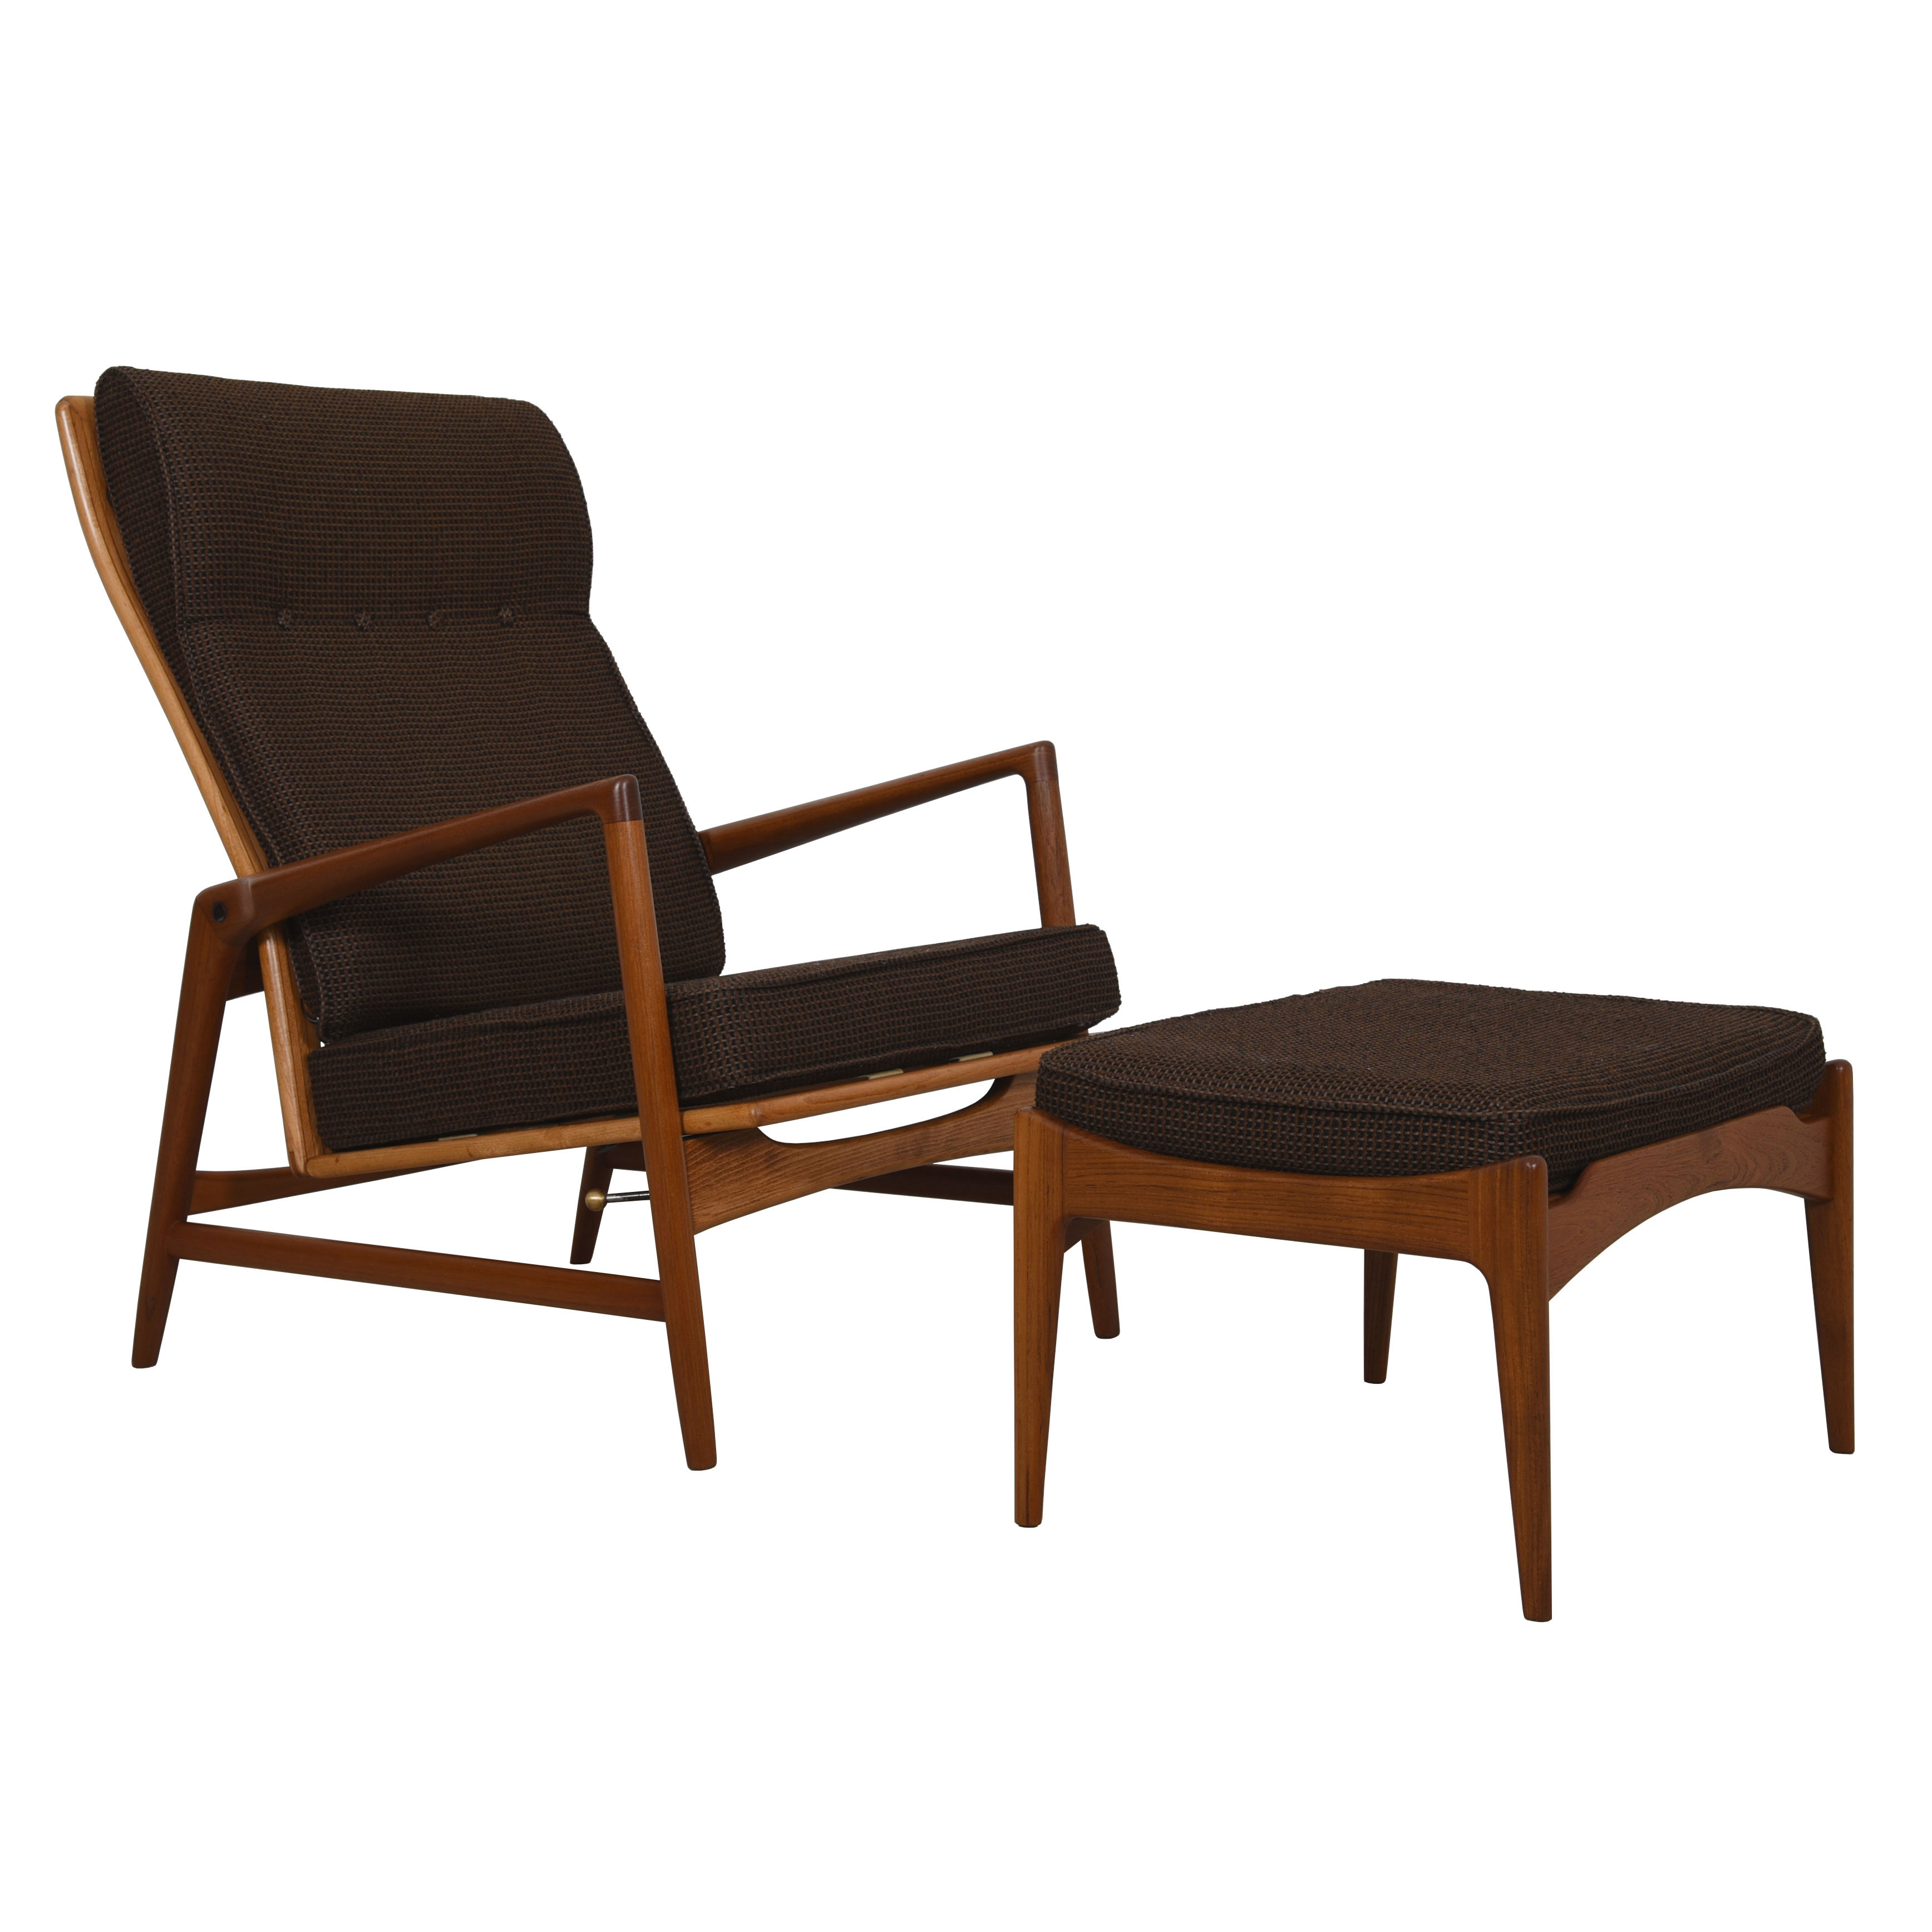 Kofod Larsen Danish Teak Adjustable Lounge Chair w/ Ottoman by Selig